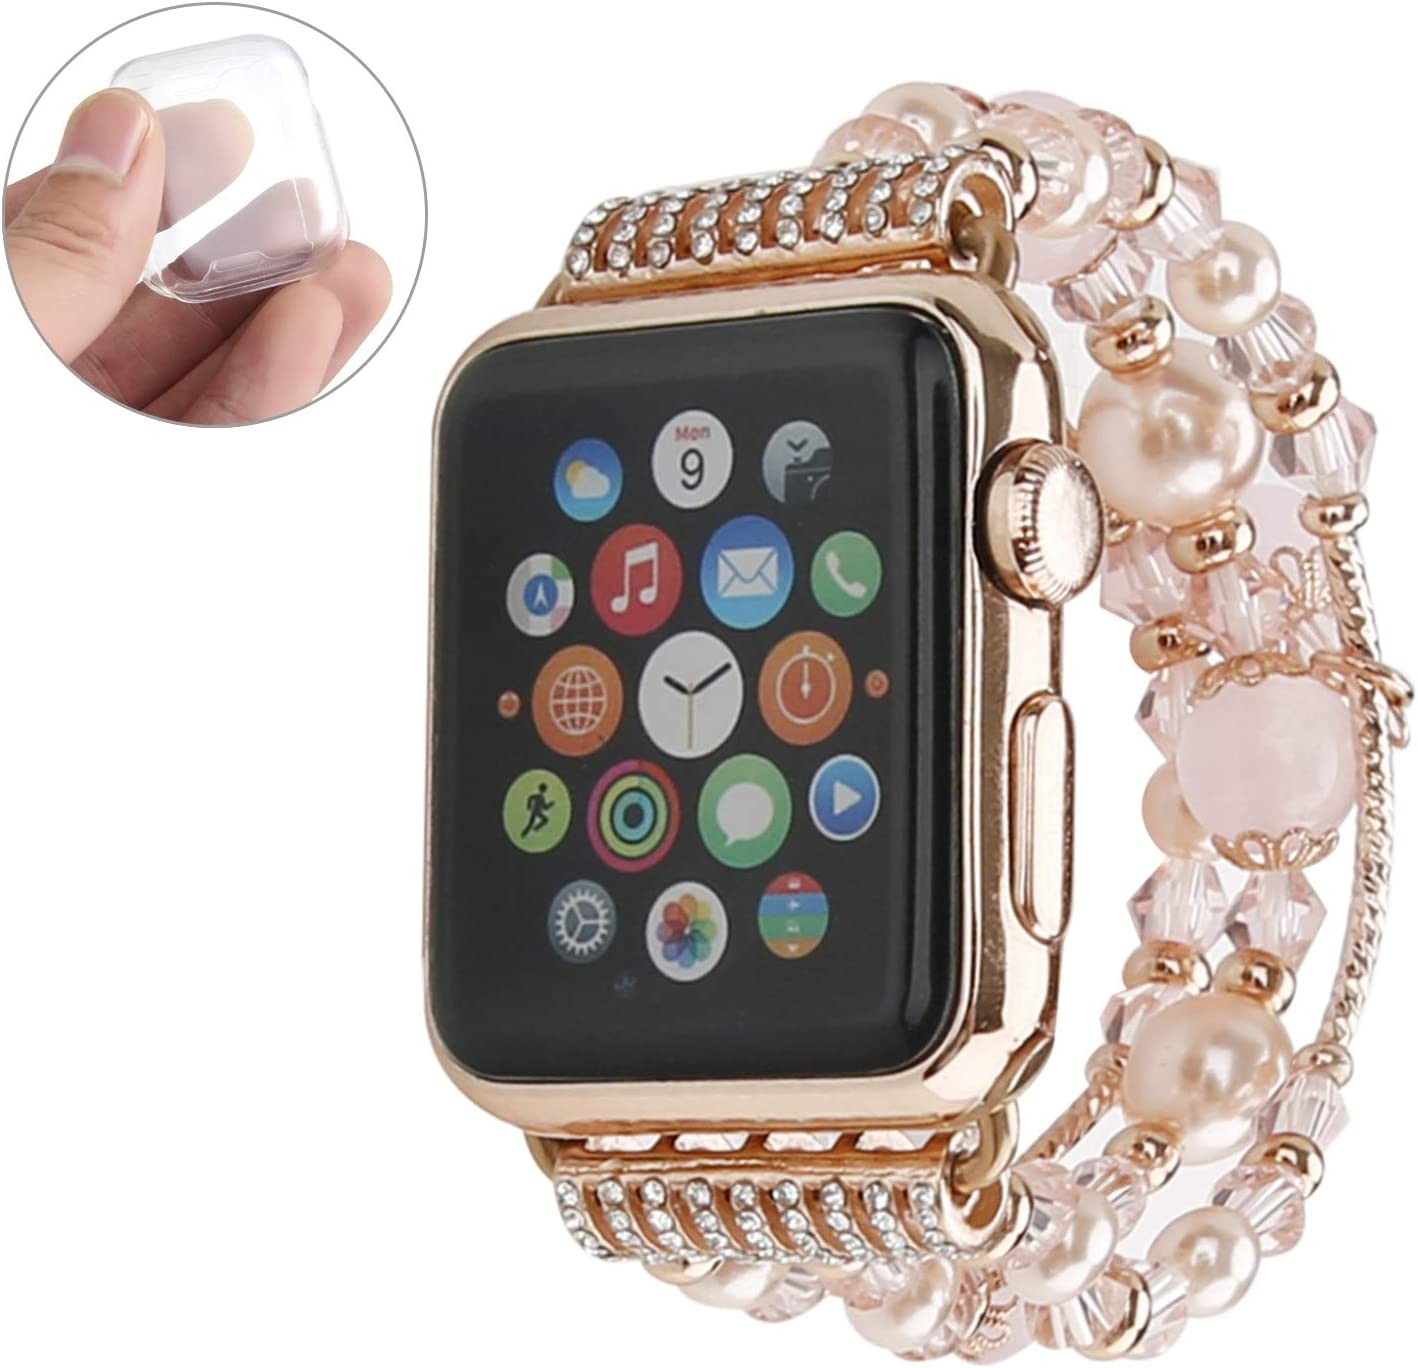 GEMEK Compatible with Apple Watch Band 38mm 40mm Rose Gold Women Agate Pearl Bracelet Strap, Fashion Handmade Elastic Replacement for iWatch Bands Series 6/5/4/3/2/1 Girls Wristband (Pink 38mm)